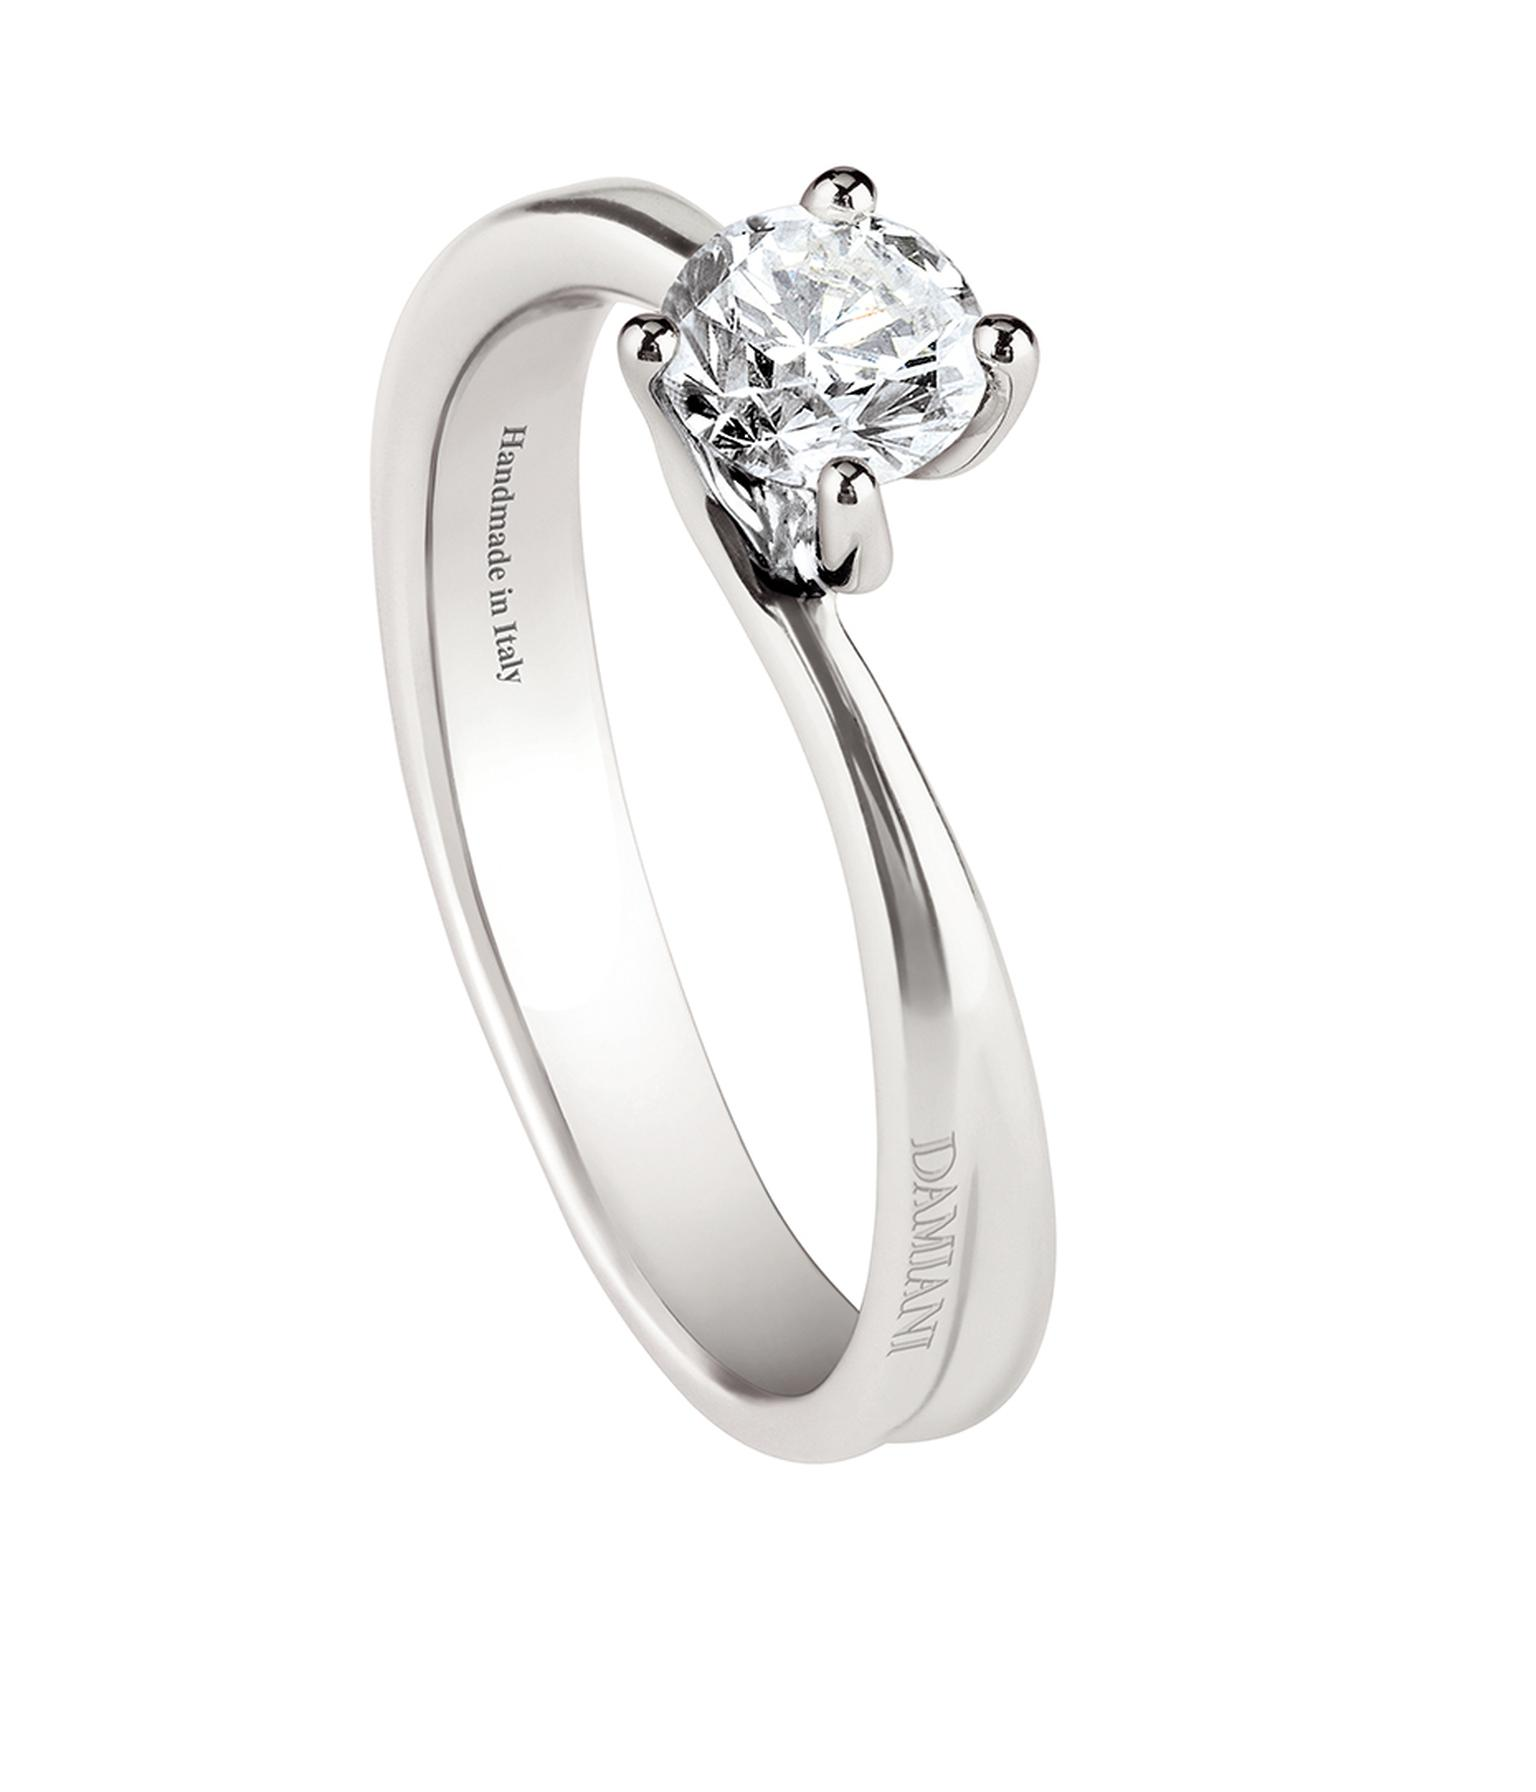 Damiani Beauty collection brilliant-cut solitaire engagement ring with a curved band setting.